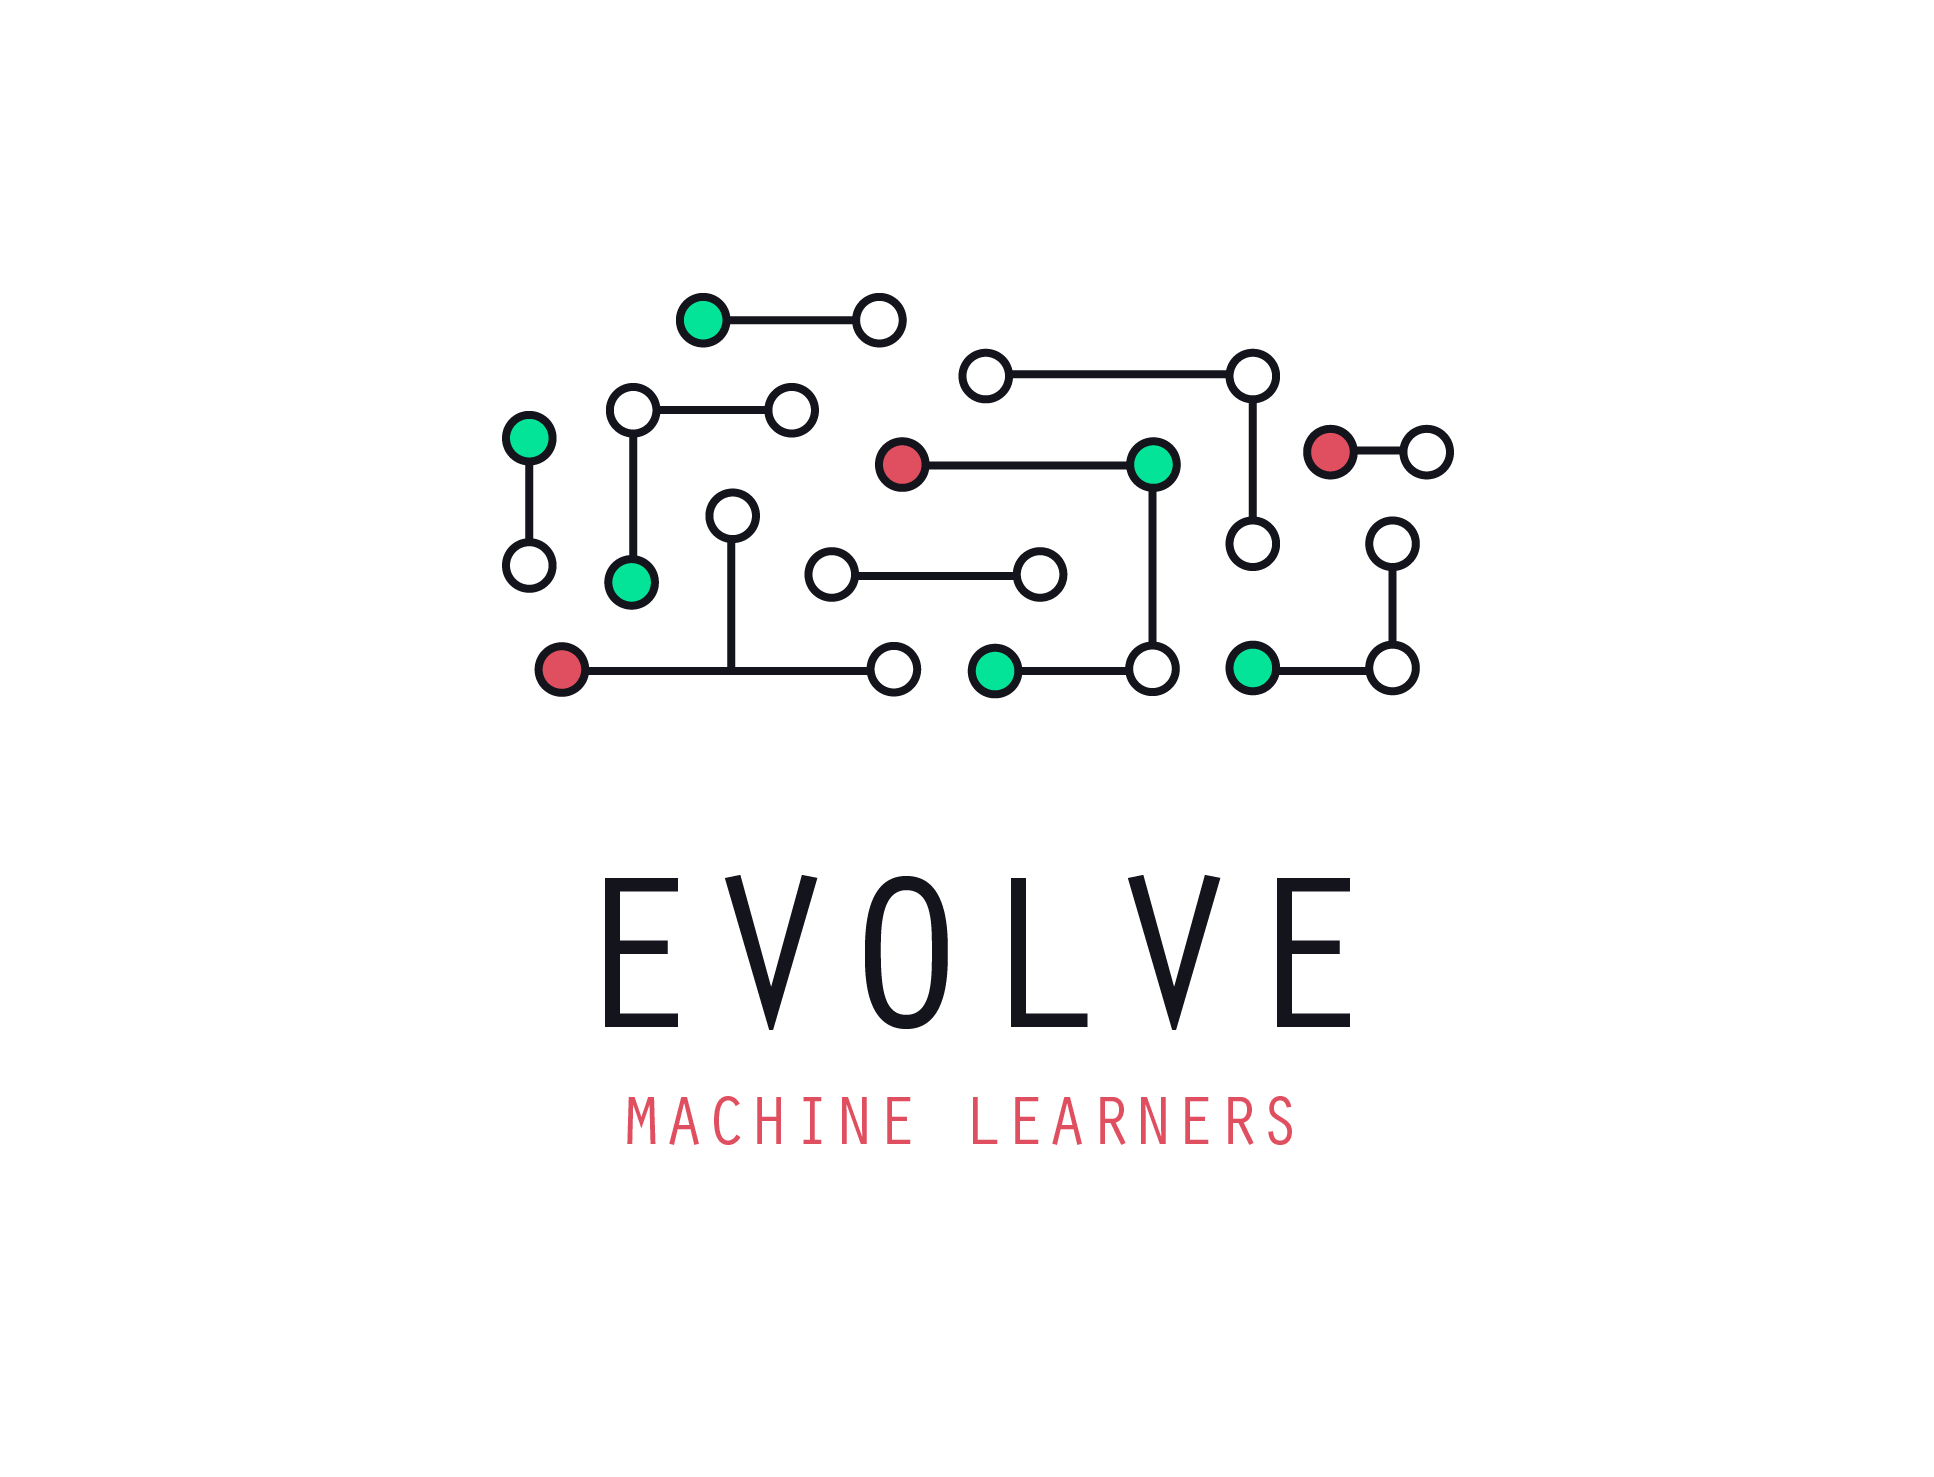 Evolve Machine Learners